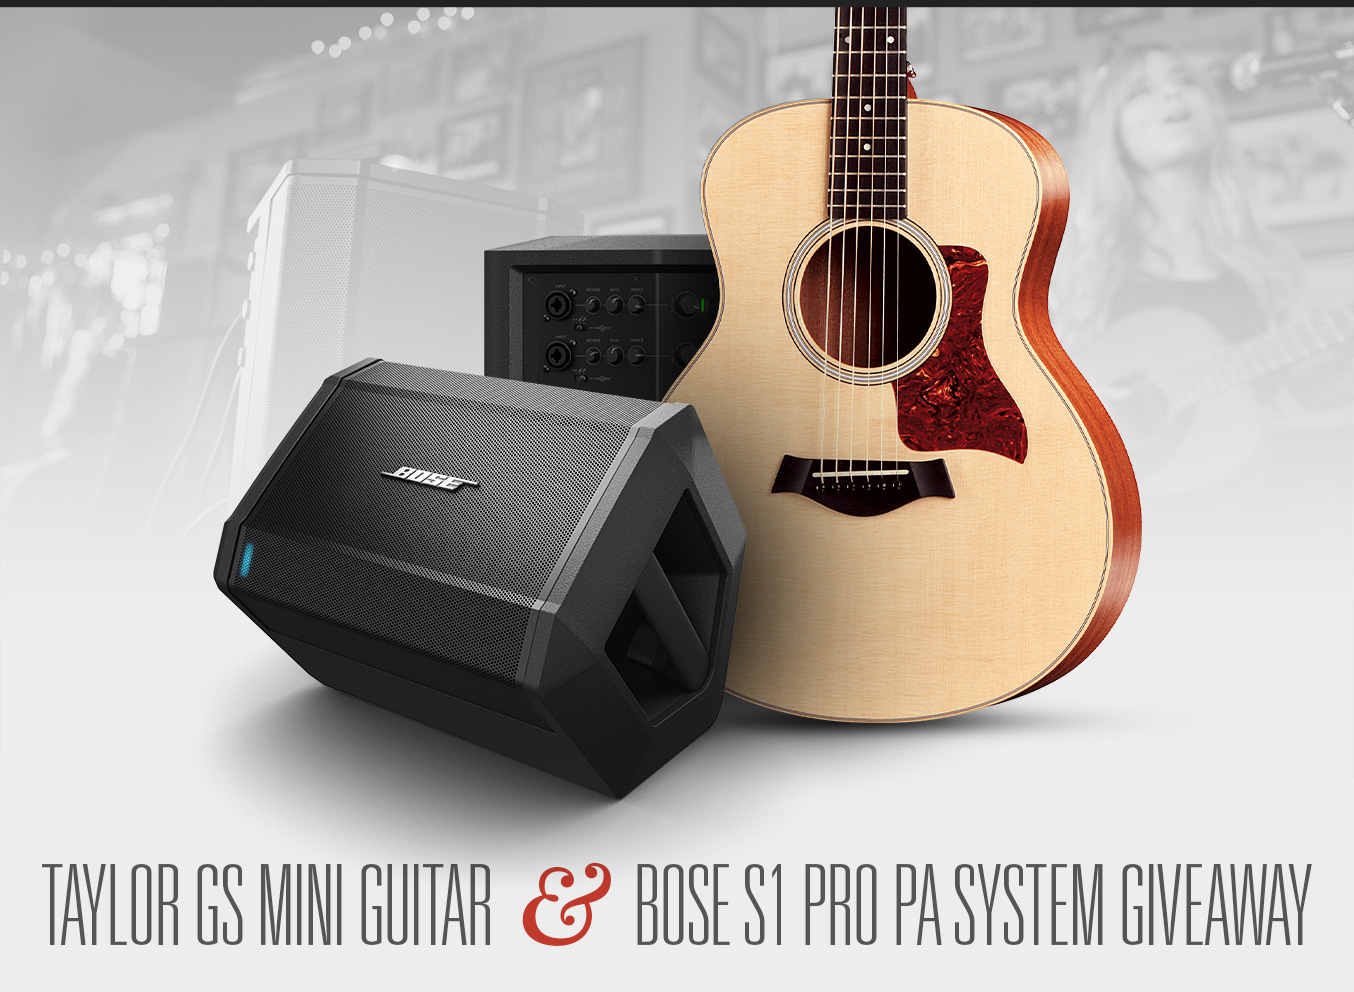 Taylor GS Mini Guitar + Bose S1 Pro PA System Giveaway